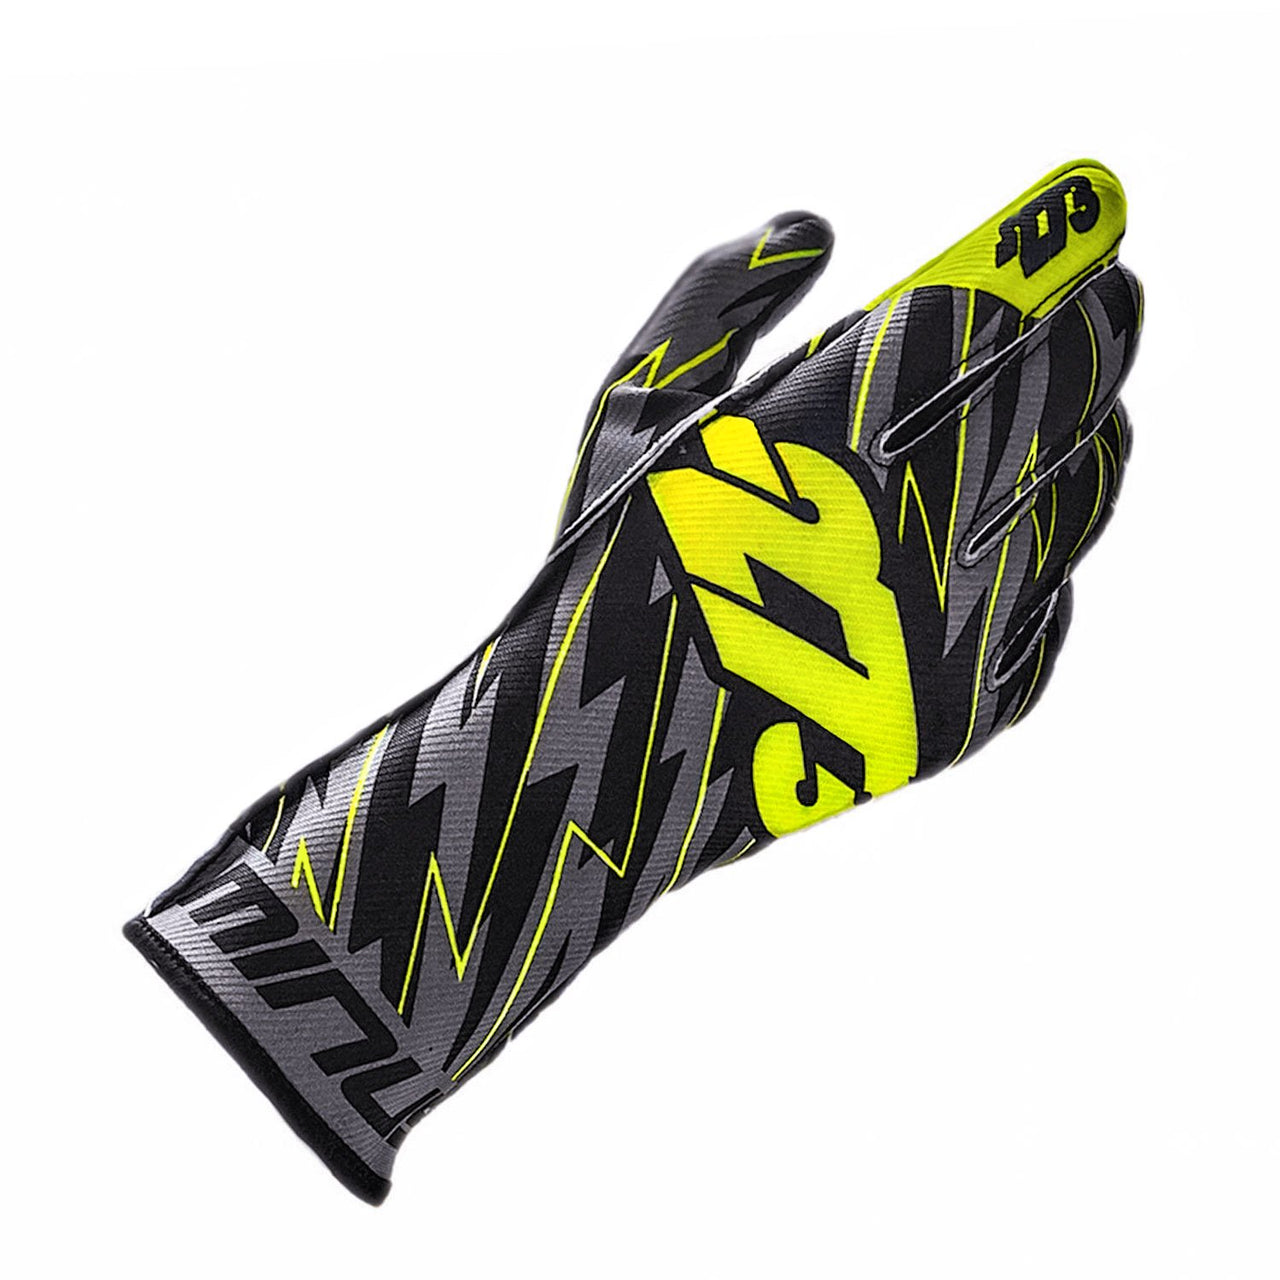 -273 Blitz Glove Black/Yellow - Medium